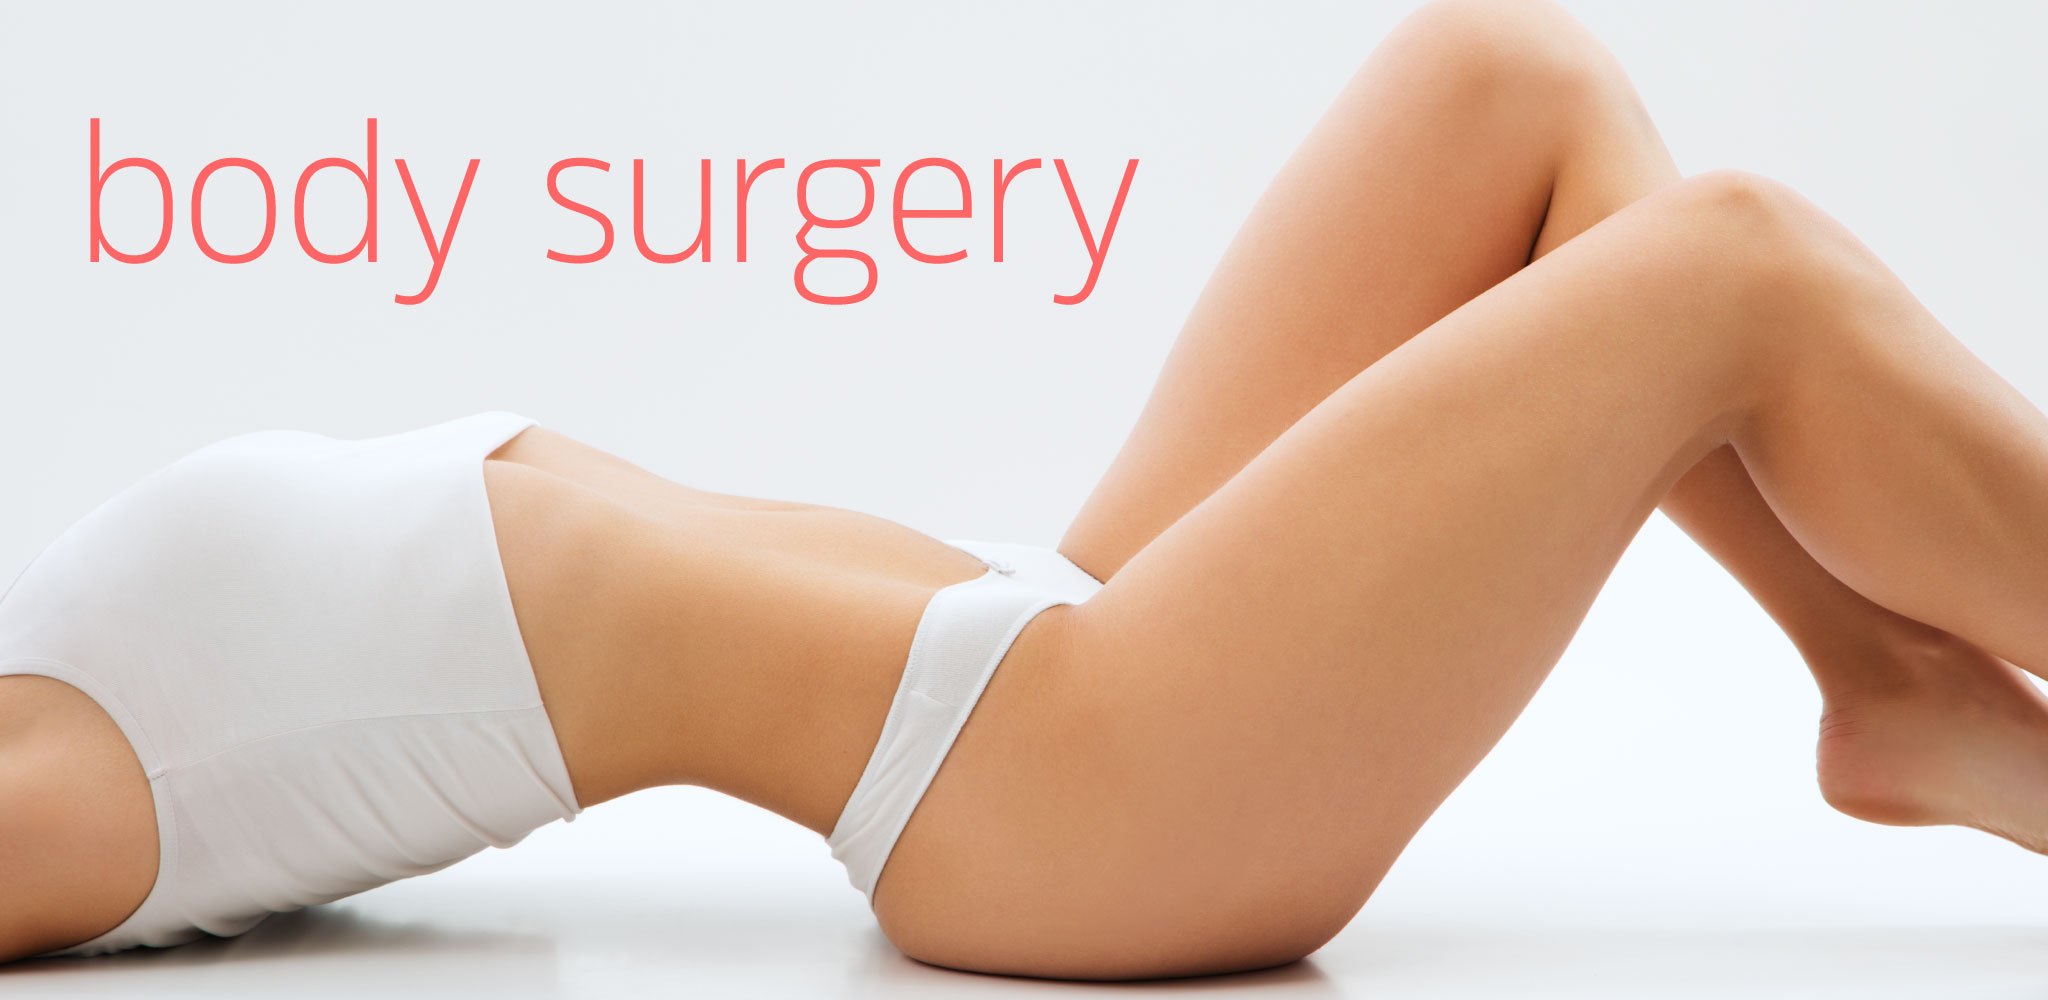 Atalla Plastic Surgery body surgery bowling green KY abdominoplasty [tummy tuck] mommy makeover liposuction post weight loss surgery arm lift body lift thigh lift otoplasty [ear pinning]